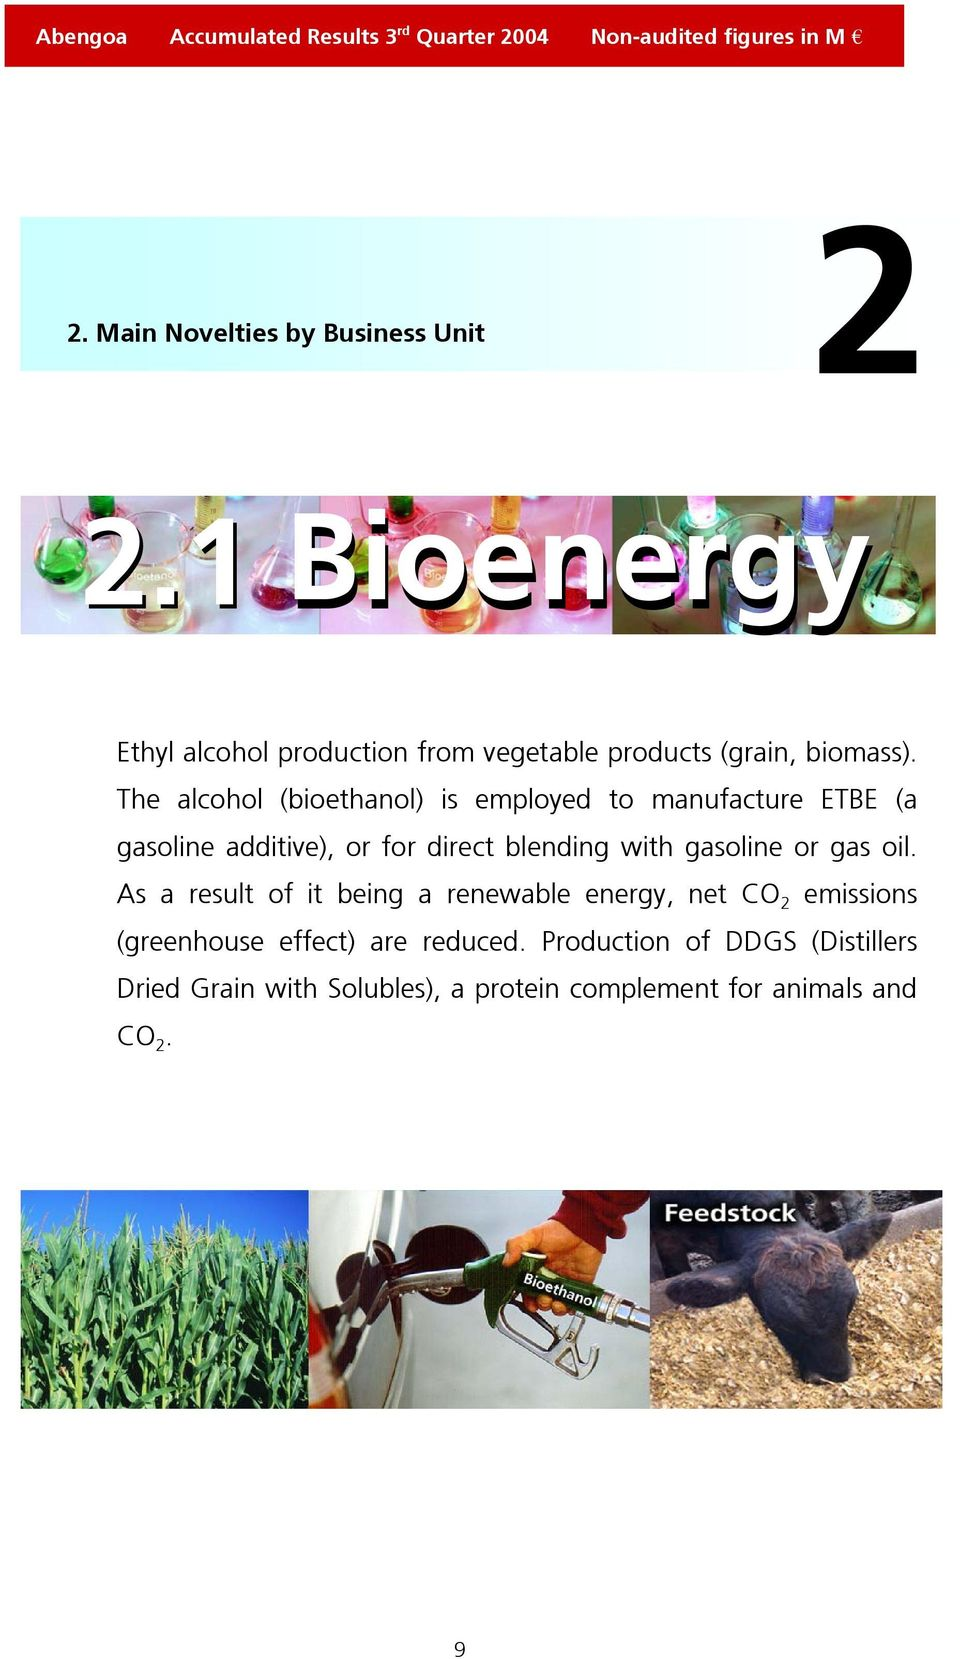 The alcohol (bioethanol) is employed to manufacture ETBE (a gasoline additive), or for direct blending with